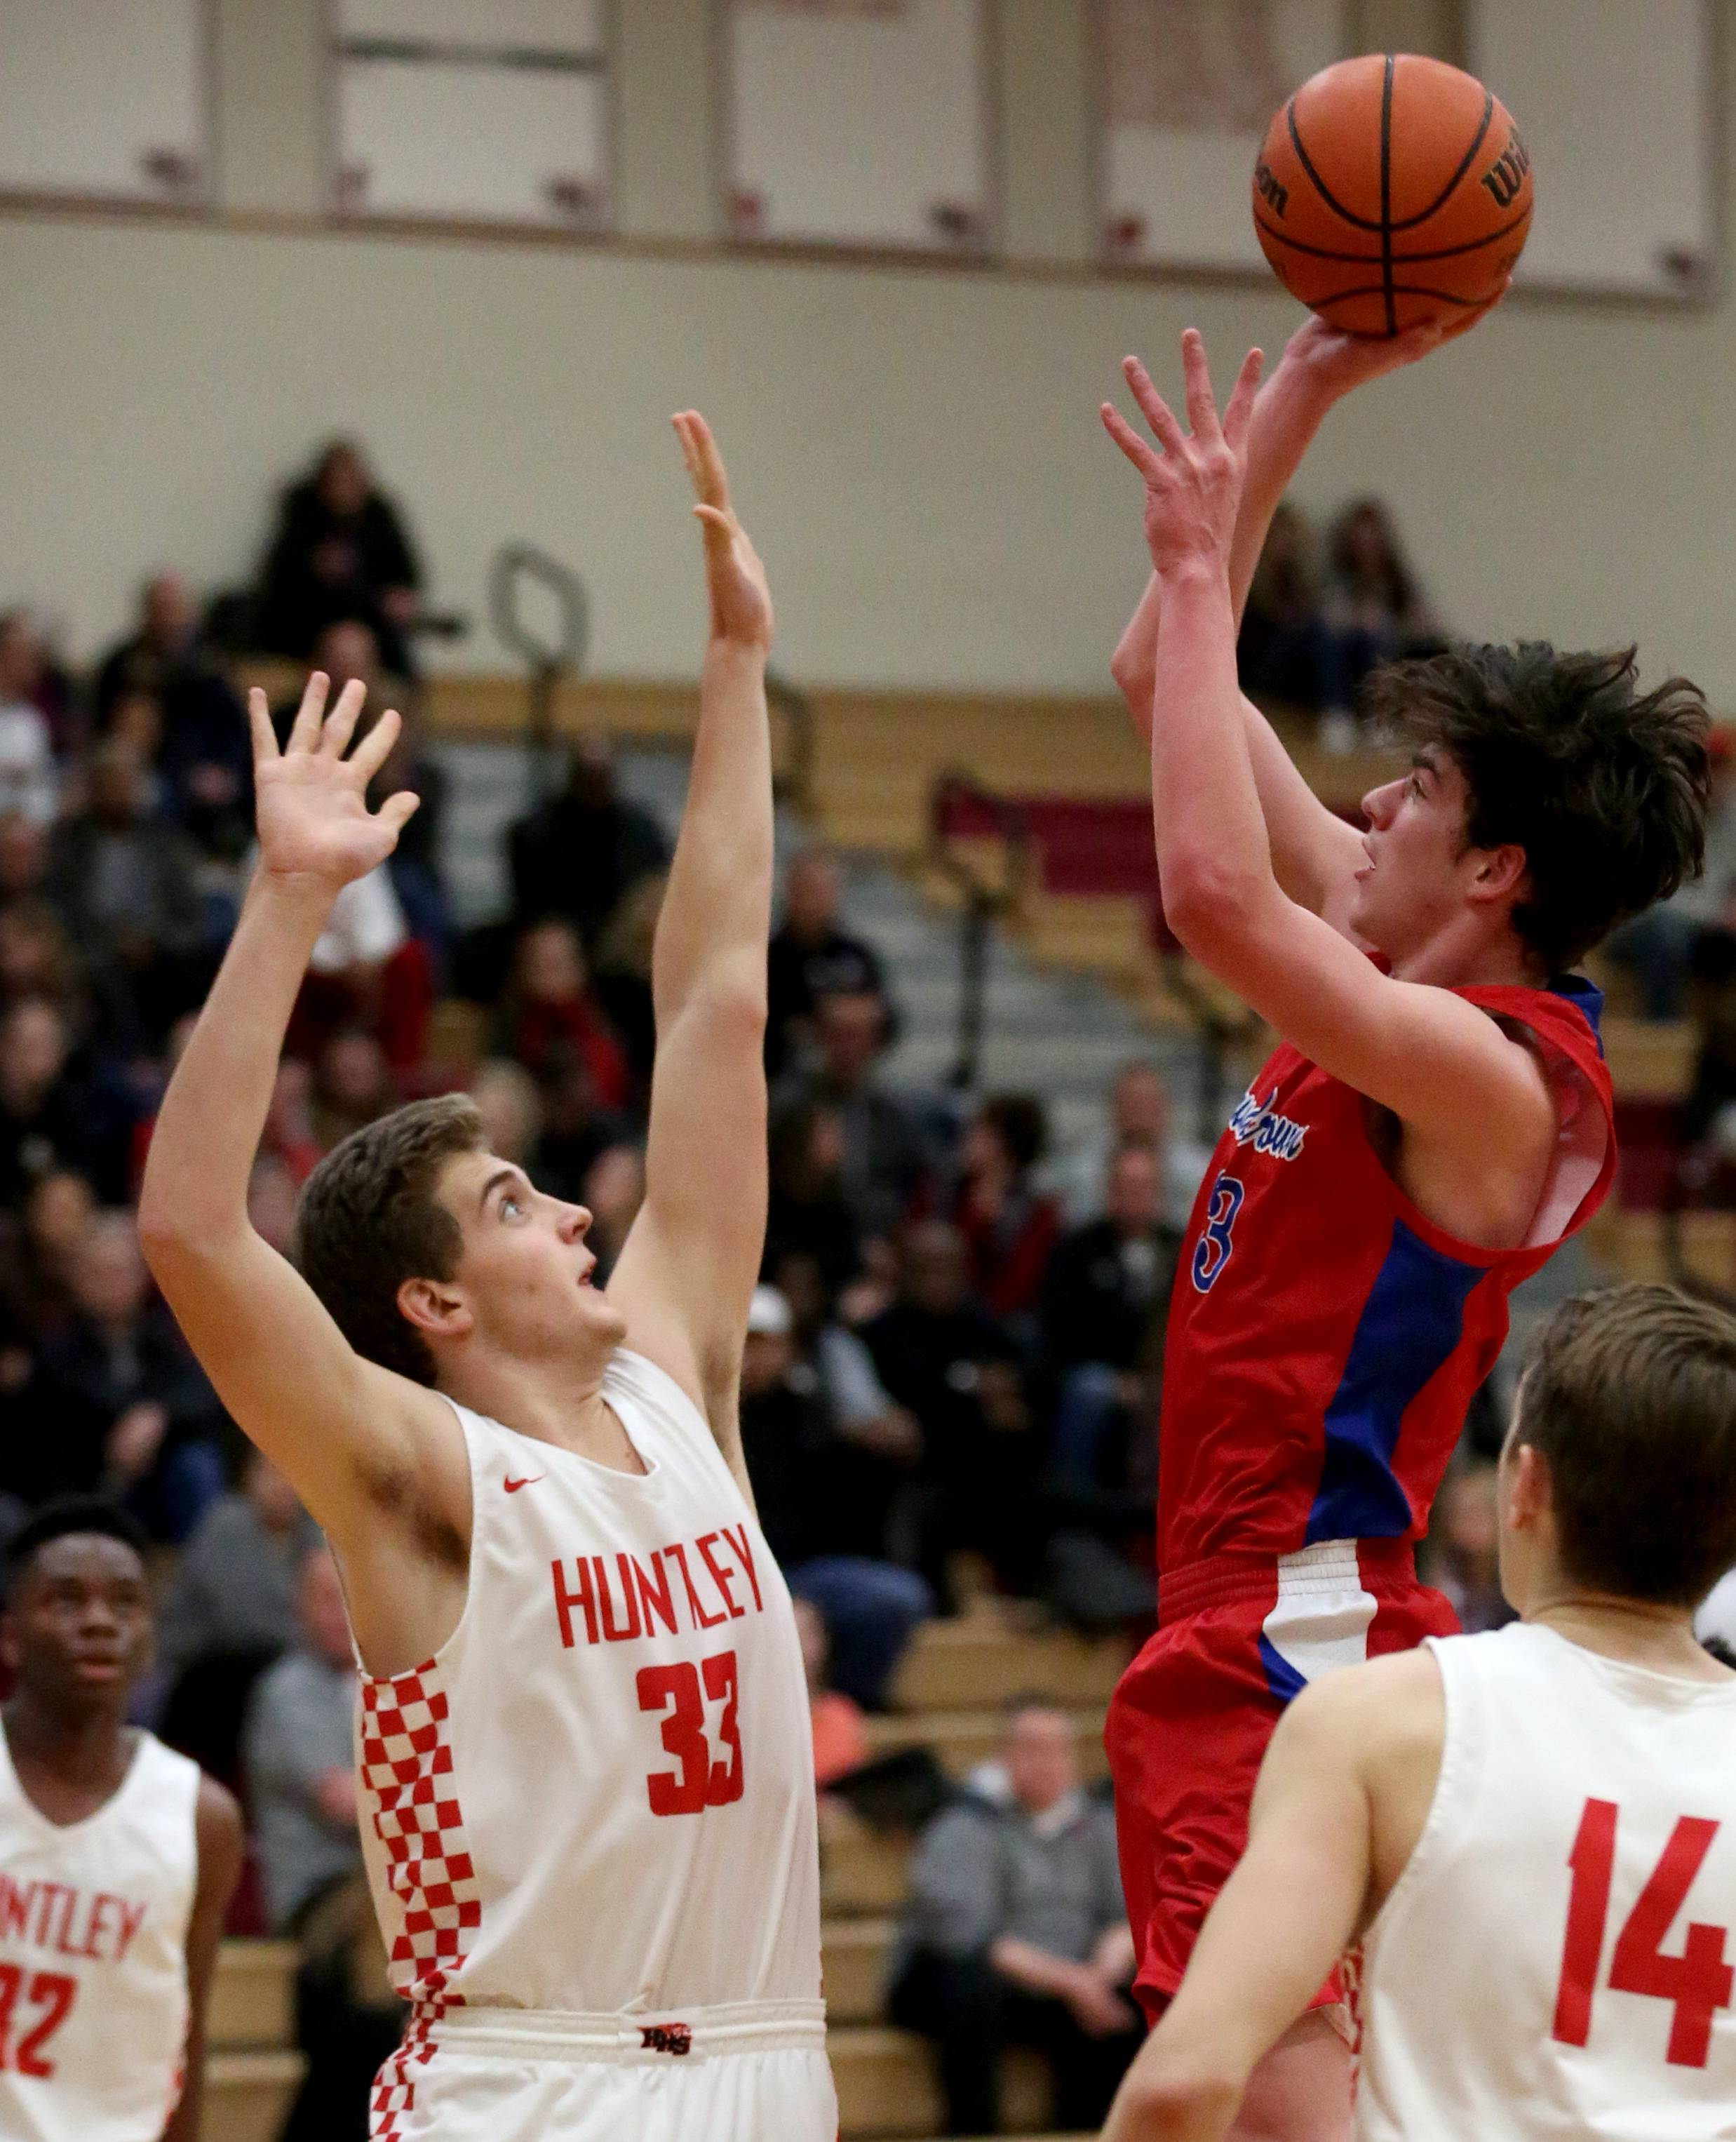 Dundee-Crown's Jack Michalski, right, rises for a shot as Huntley's Luke DiFrancesca defends during varsity basketball at Huntley Tuesday night.